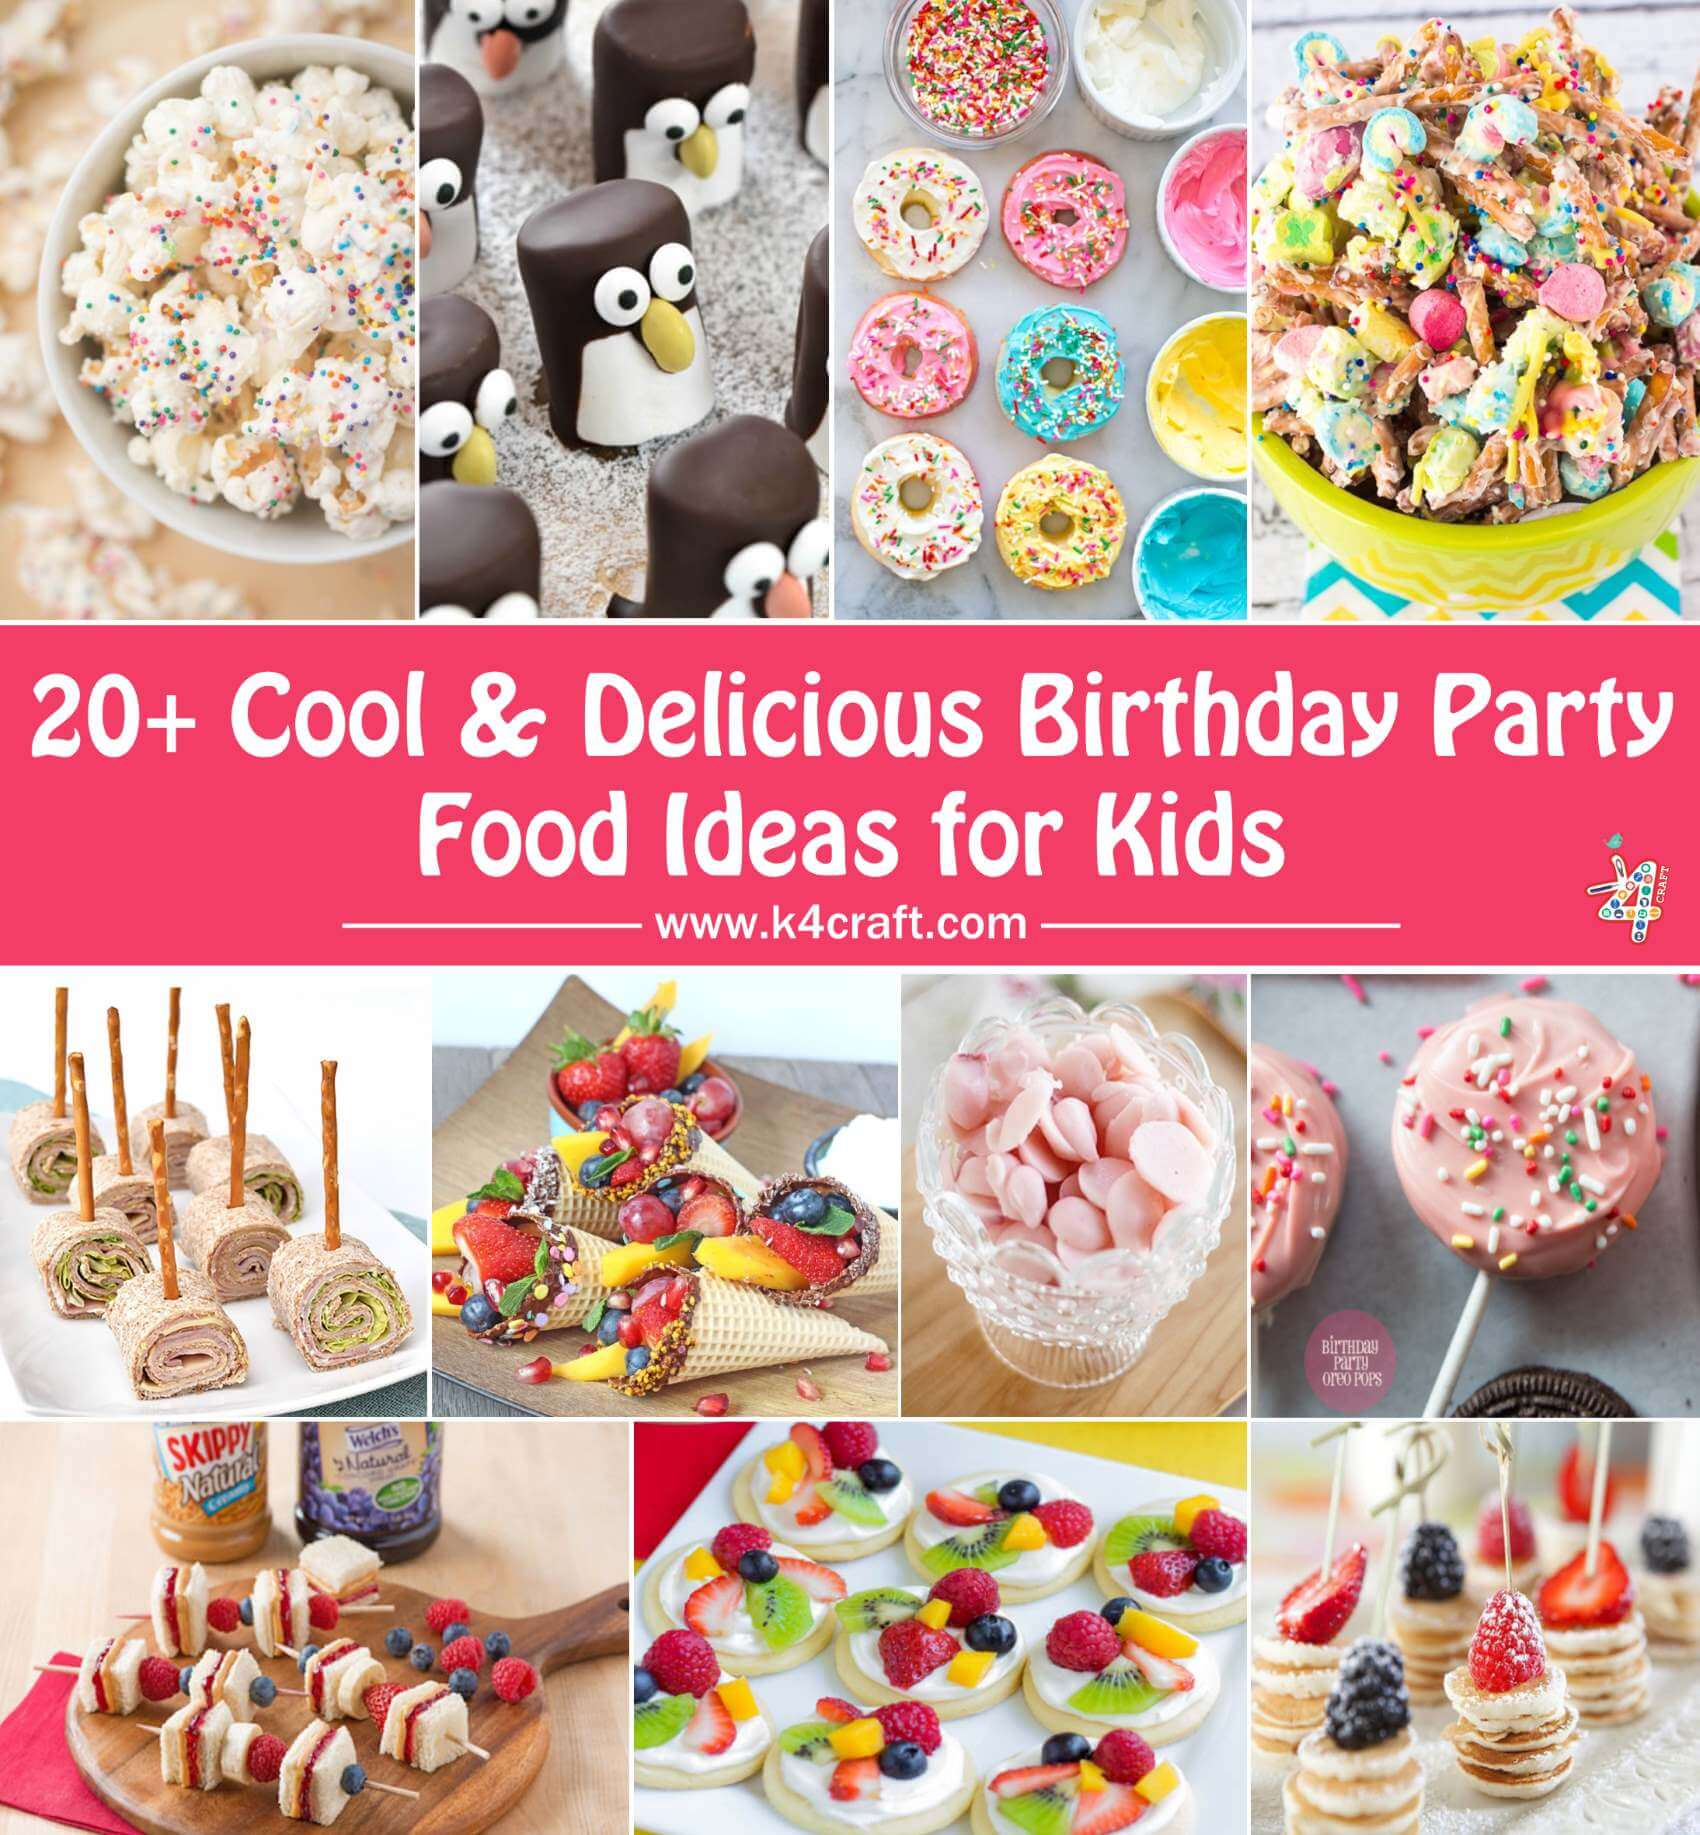 Cool & Delicious Birthday Party Food Ideas for Kids